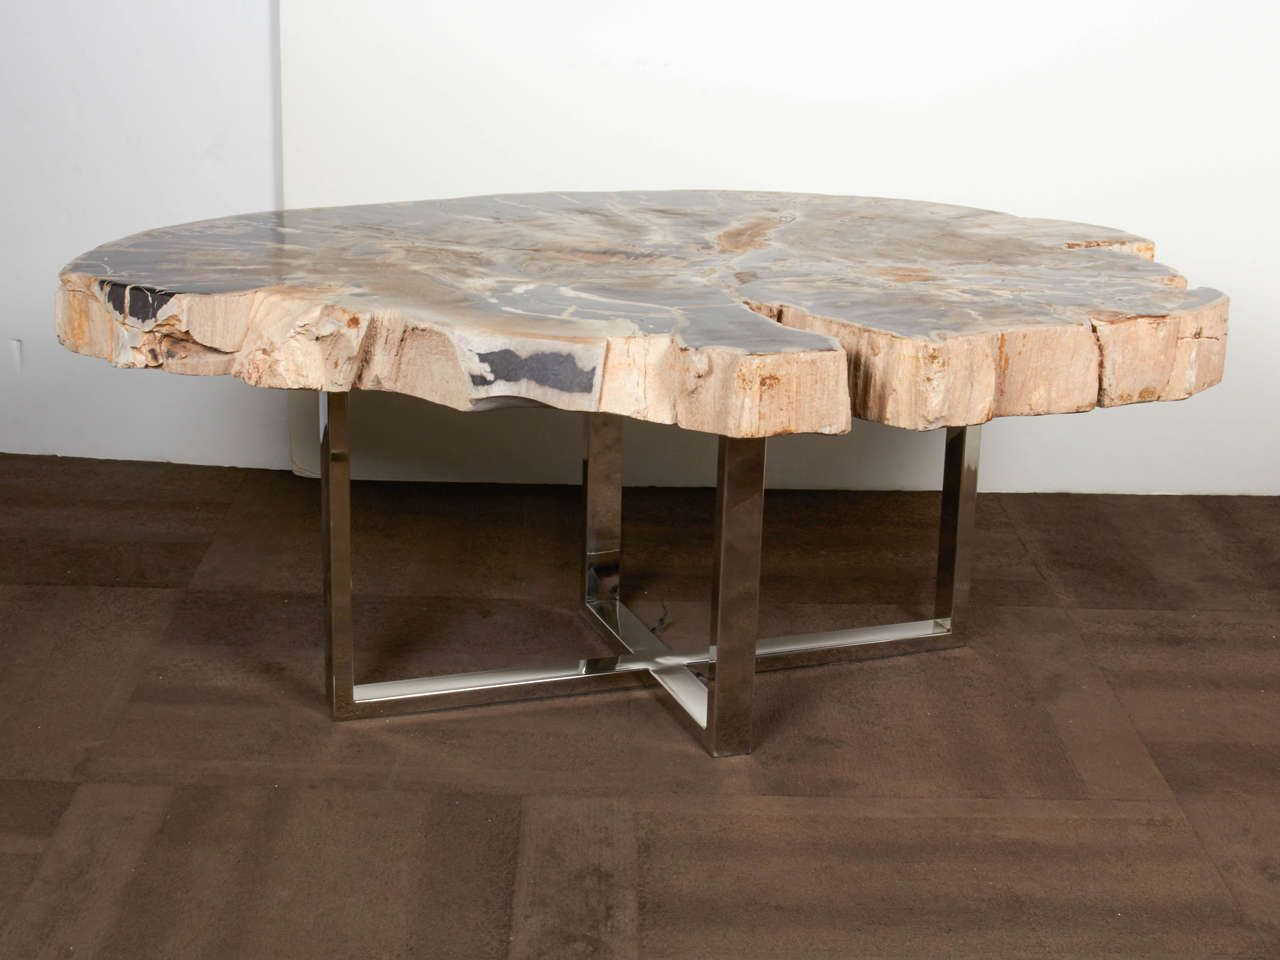 Outstanding Large Petrified Wood Slab Coffee Table | Wood slab ...